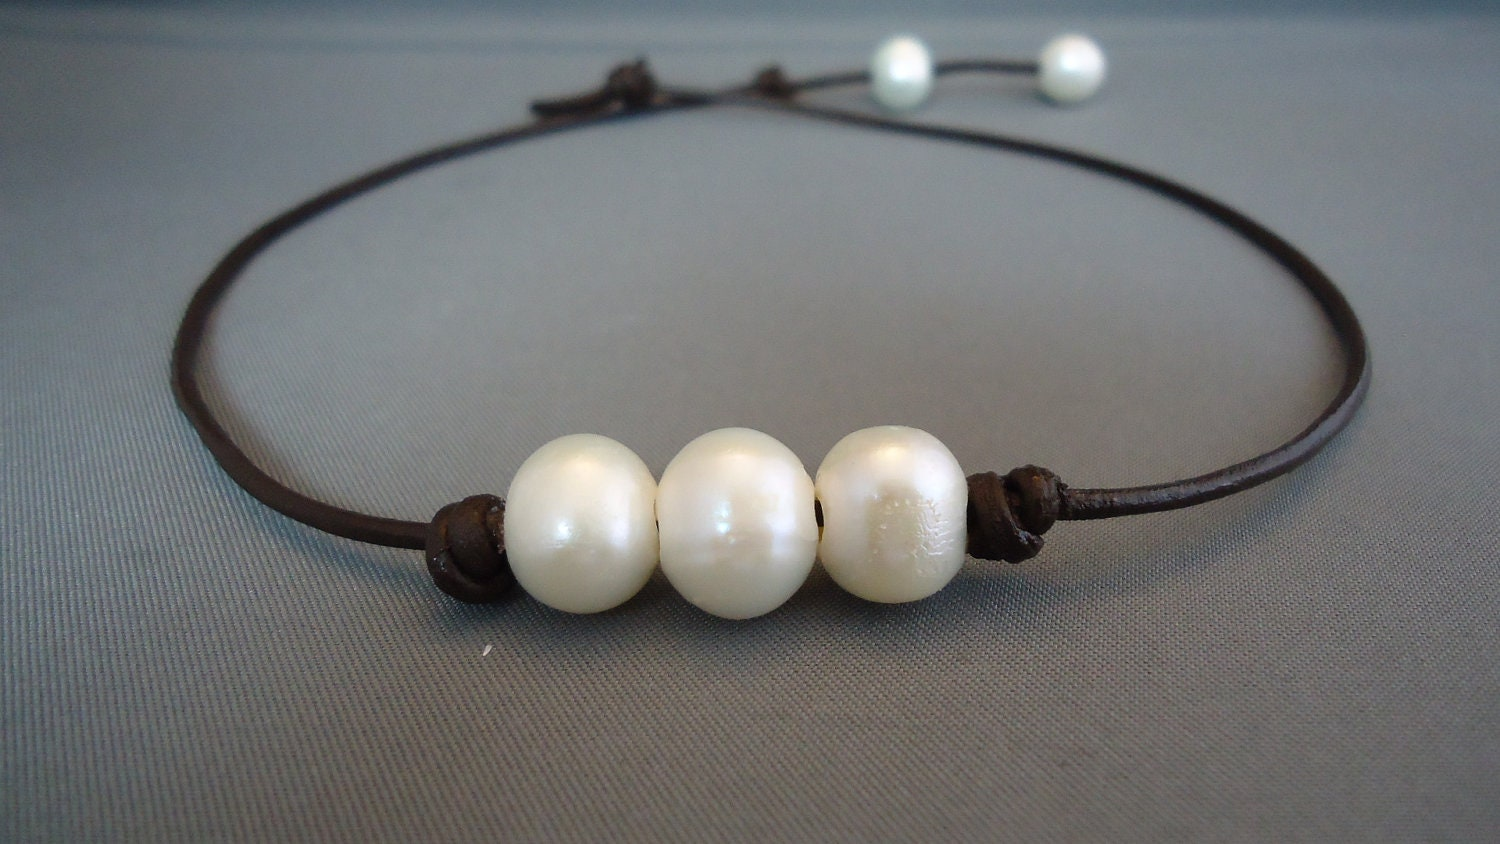 Three,wishes,Pearl,Leather,Necklace,Jewelry,leather_pearl,leather_necklace,peals_necklace,three_wishes,leather_work,iseadesigns,coastal,seaside,beach_bridal,leather pearls